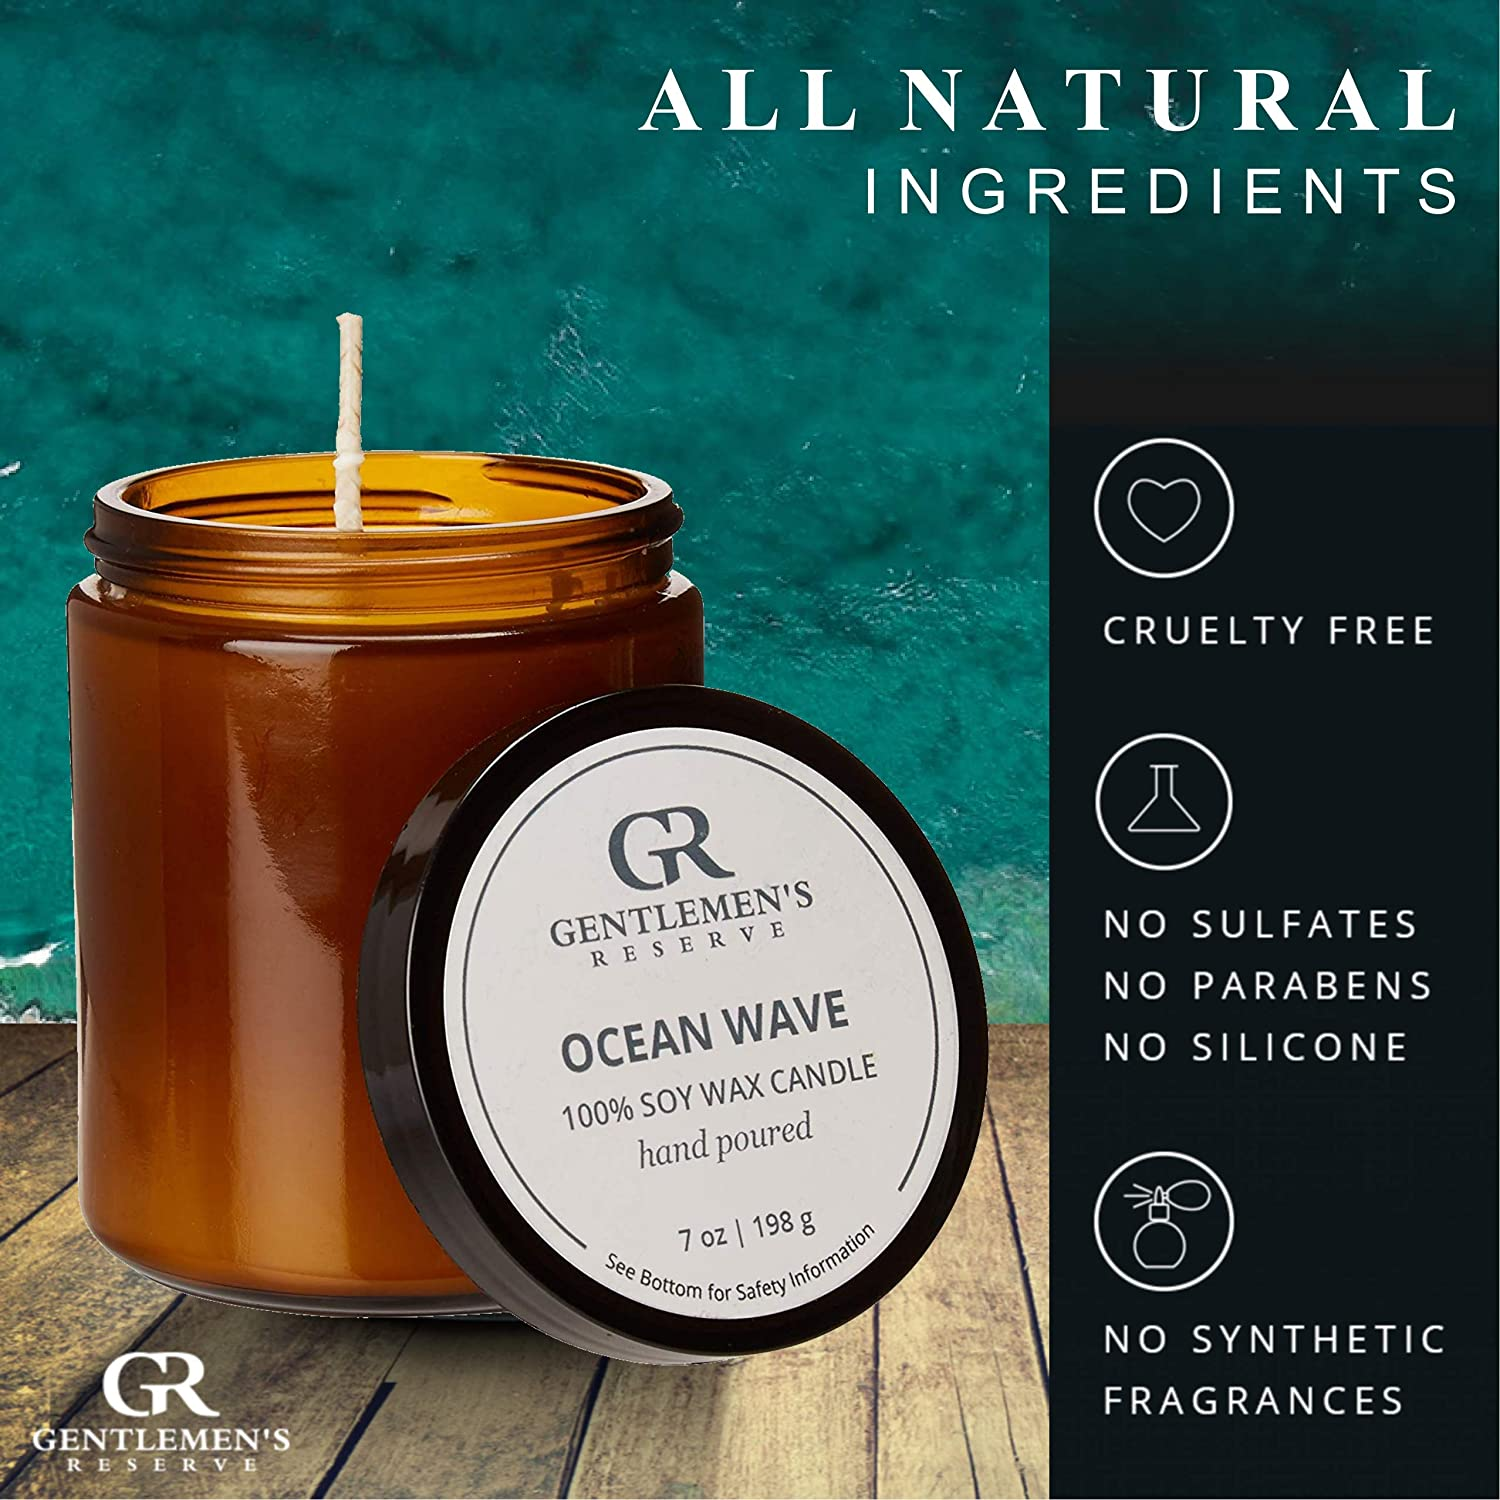 100/% Soy Candle-Manly Scent in Amber Glass Jar GR Ocean Wave Scented Candle for Men by Gentlemens Reserve All Natural